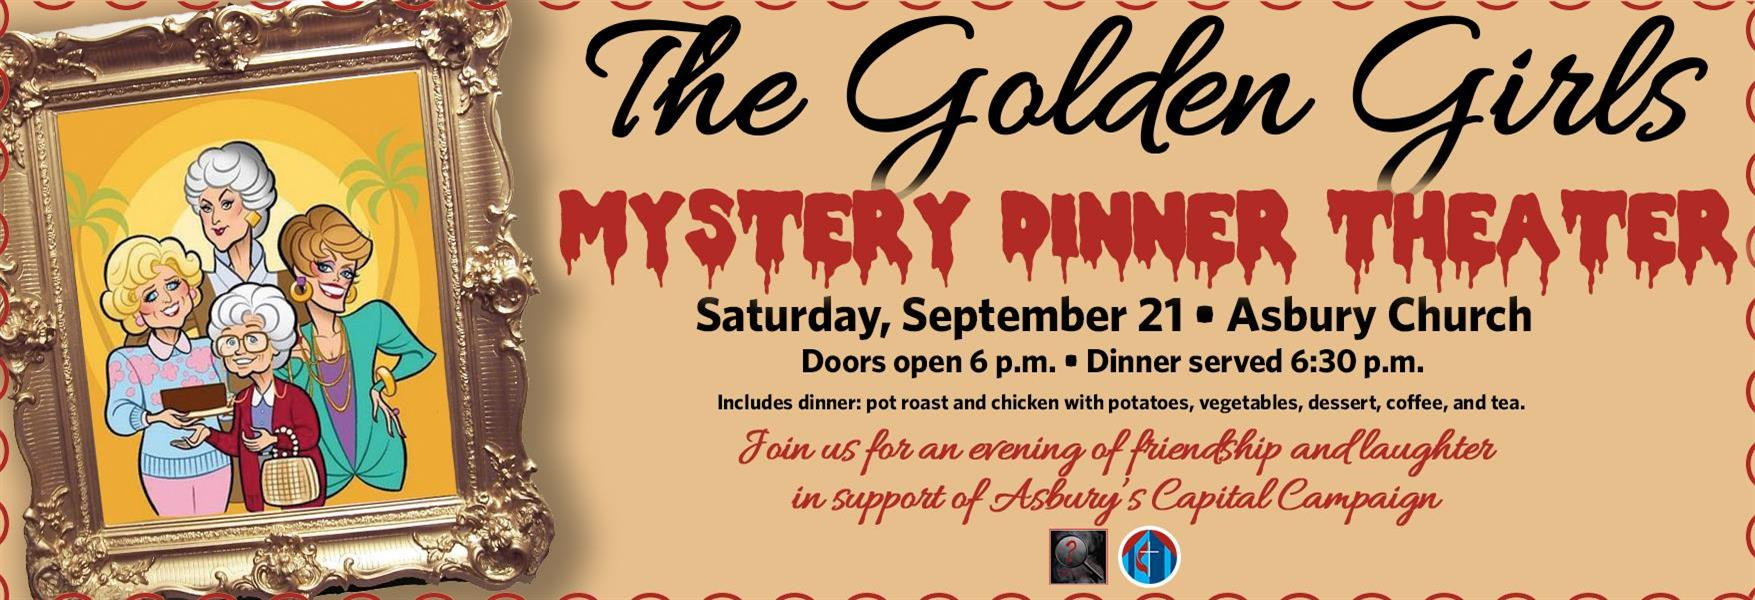 b0aba564-4e84-49c3-b0ee-64aa8b55bc20_Murder Mystery Dinner - When Now page header.jpg